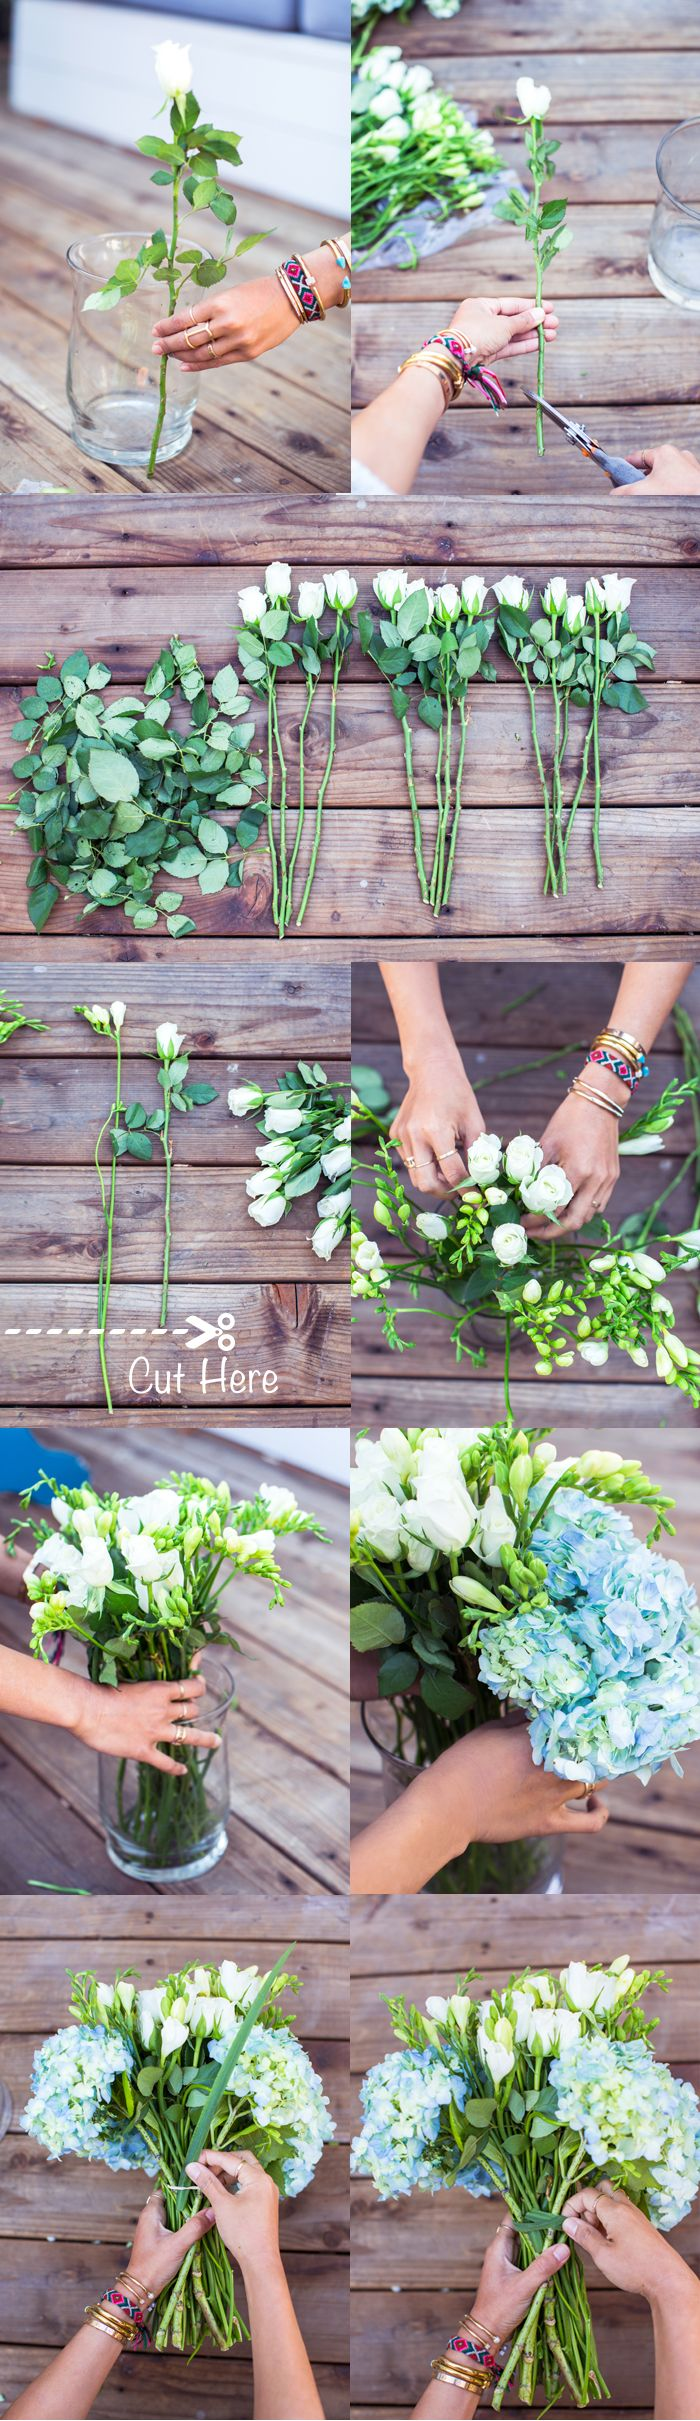 DIY para te ajudar na hora de montar um arranjo de flores <3 DIY to help you when mounting a flower arrangement <3